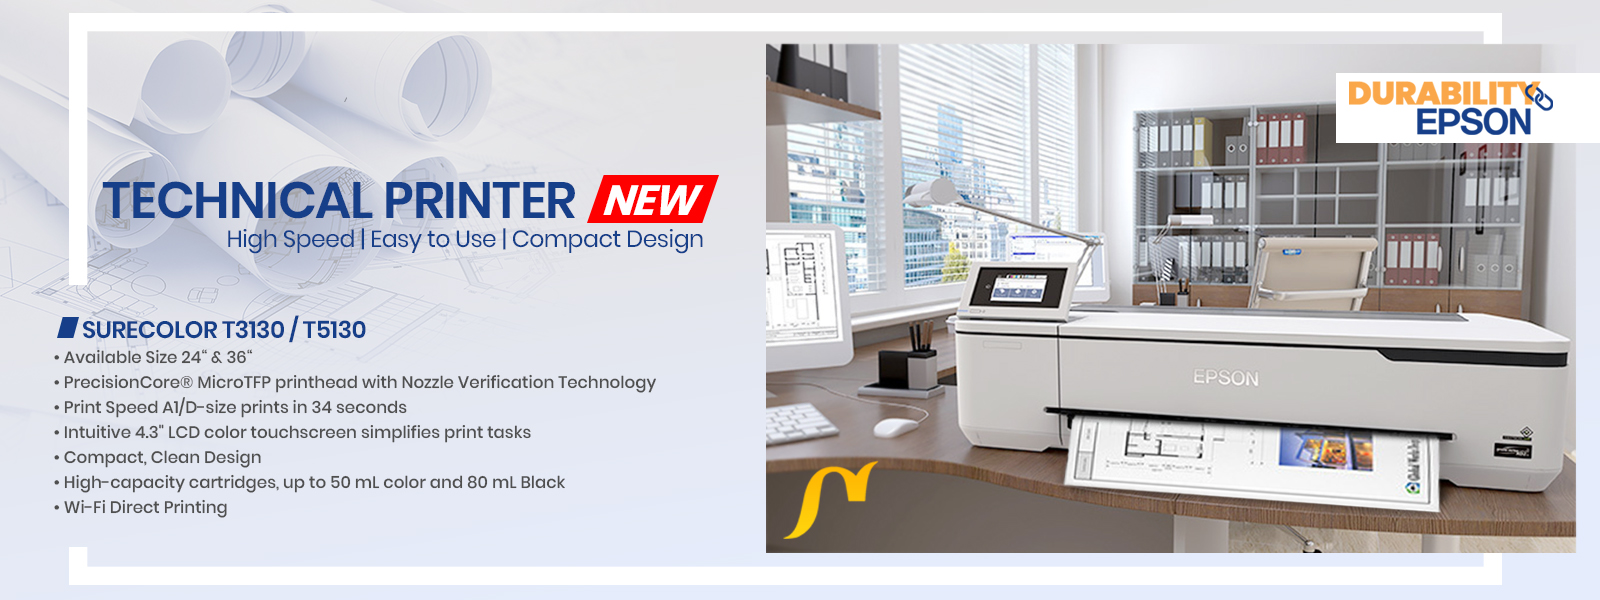 epson technical printer